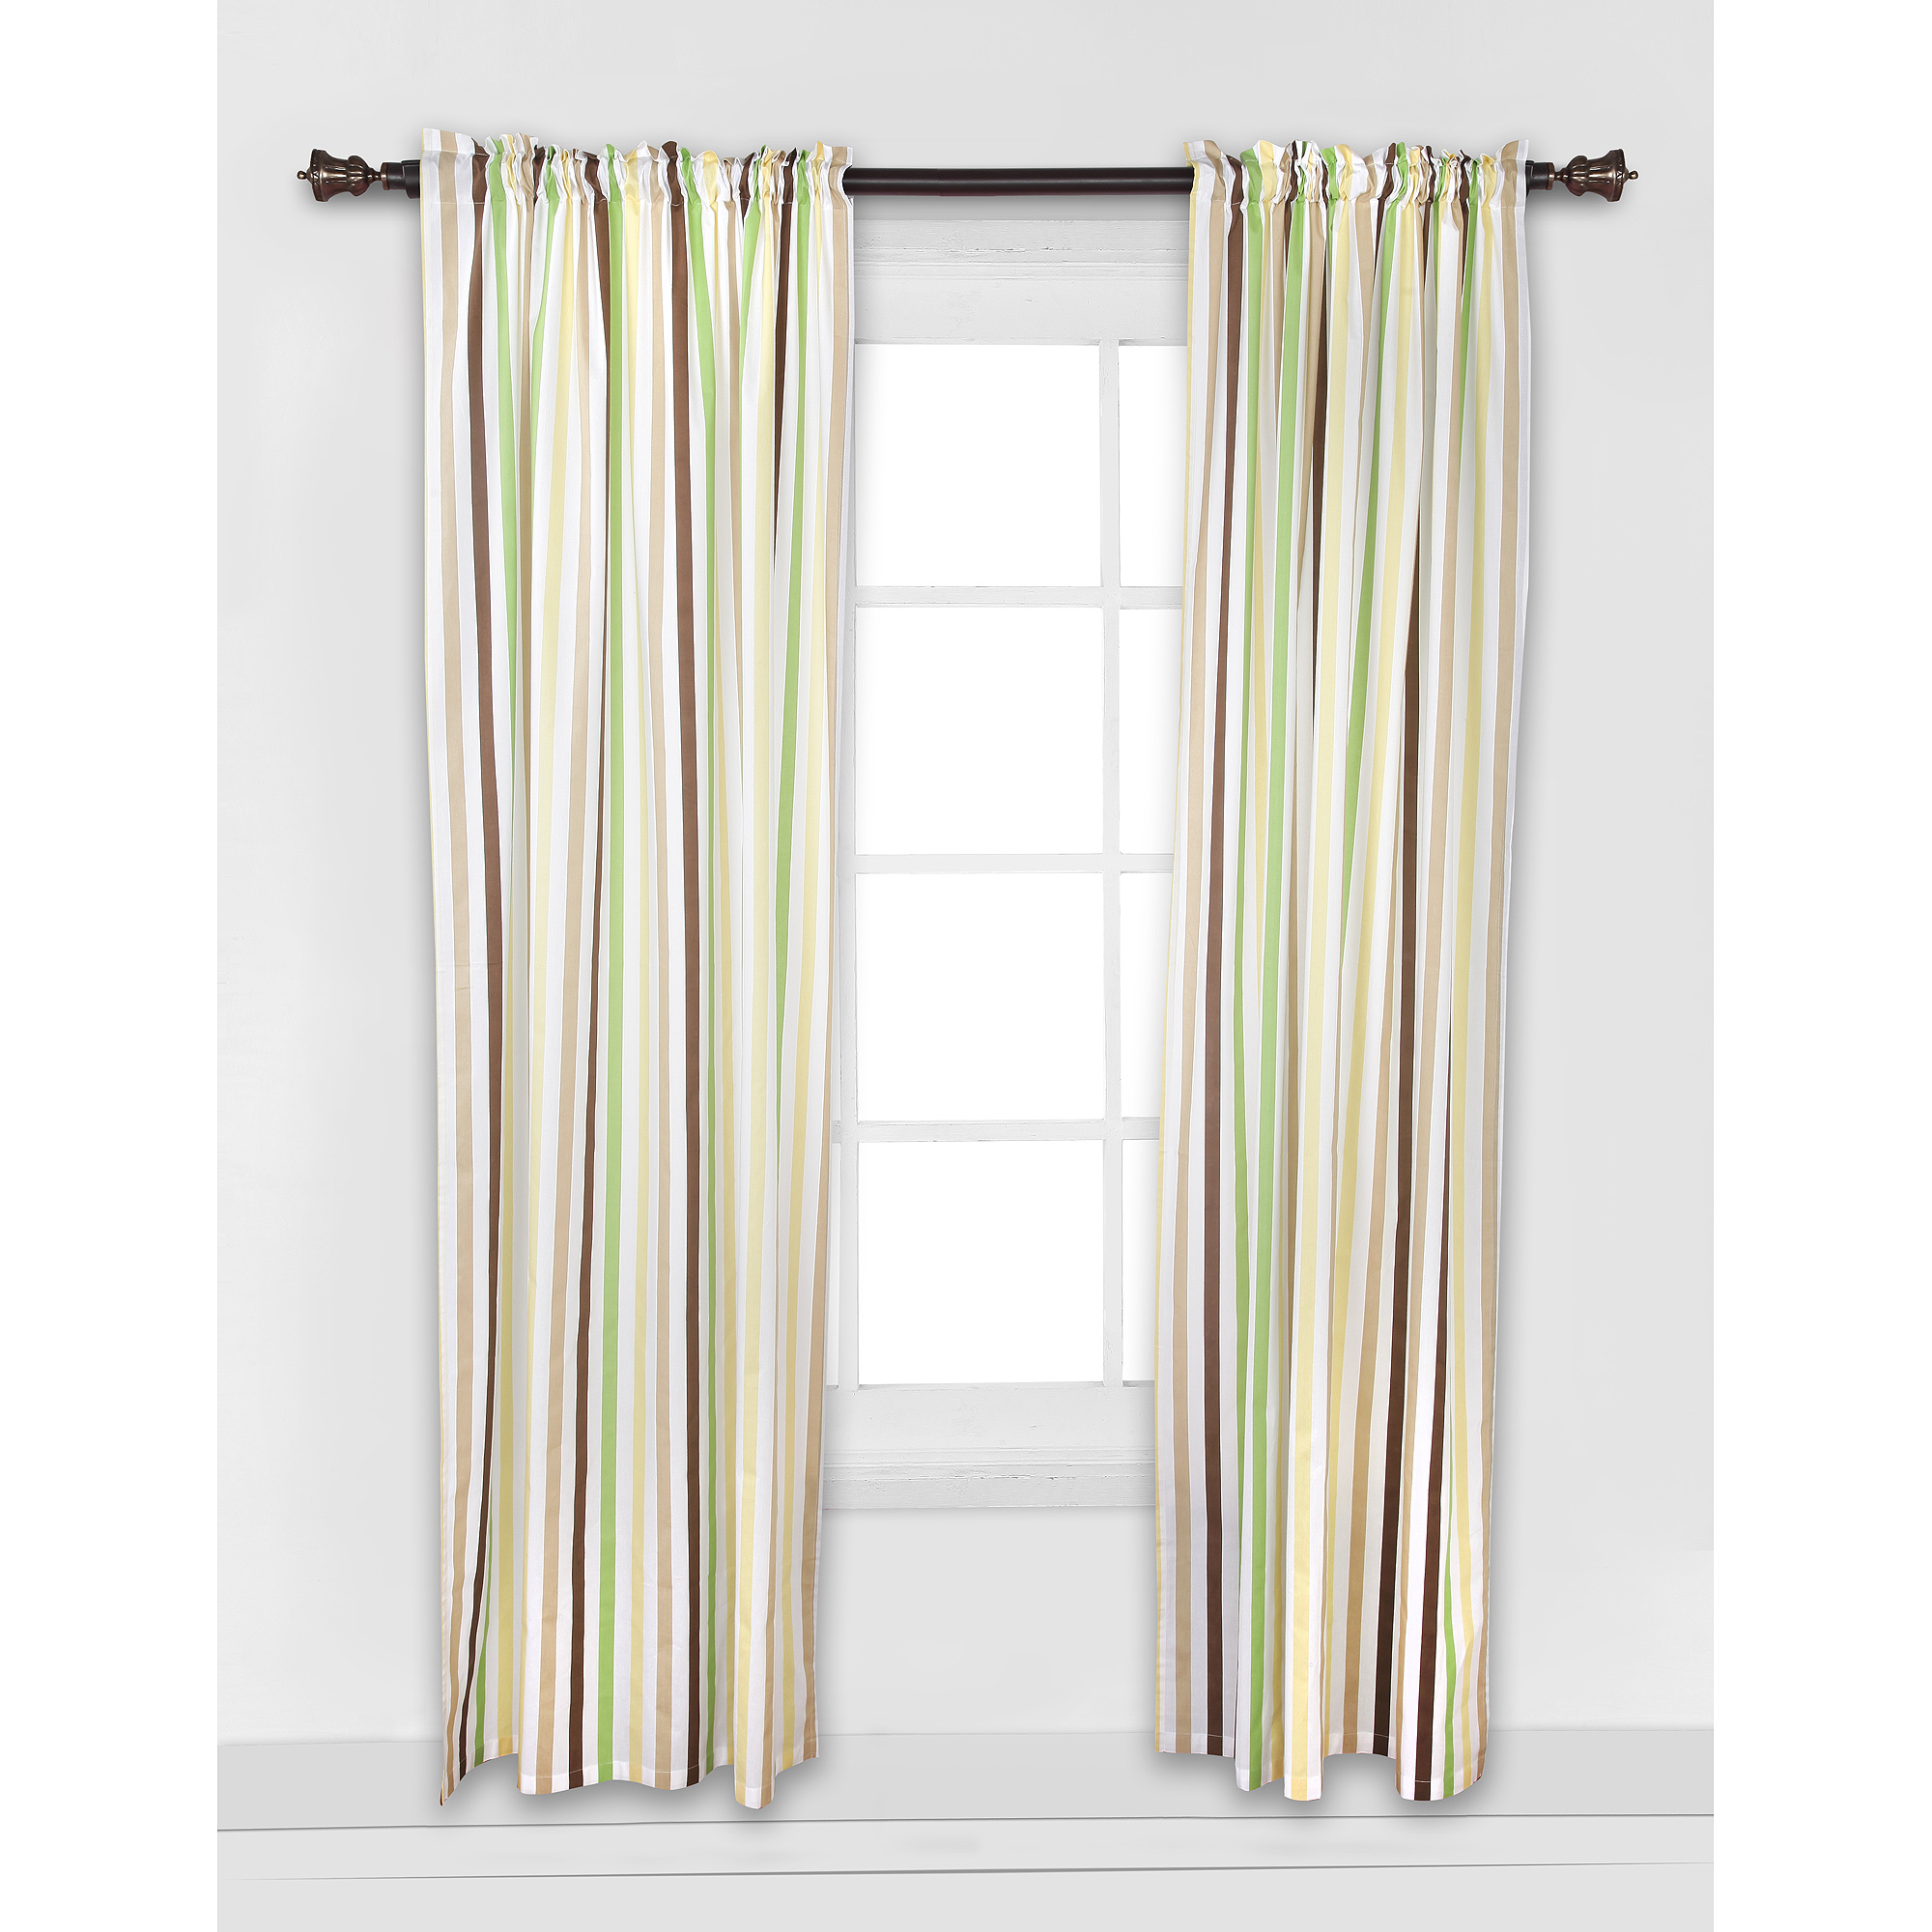 Bacati - Mod Stripes Curtain Panel 42 x 84 inches 100% Cotton Percale Fabrics, Green/Chocolate